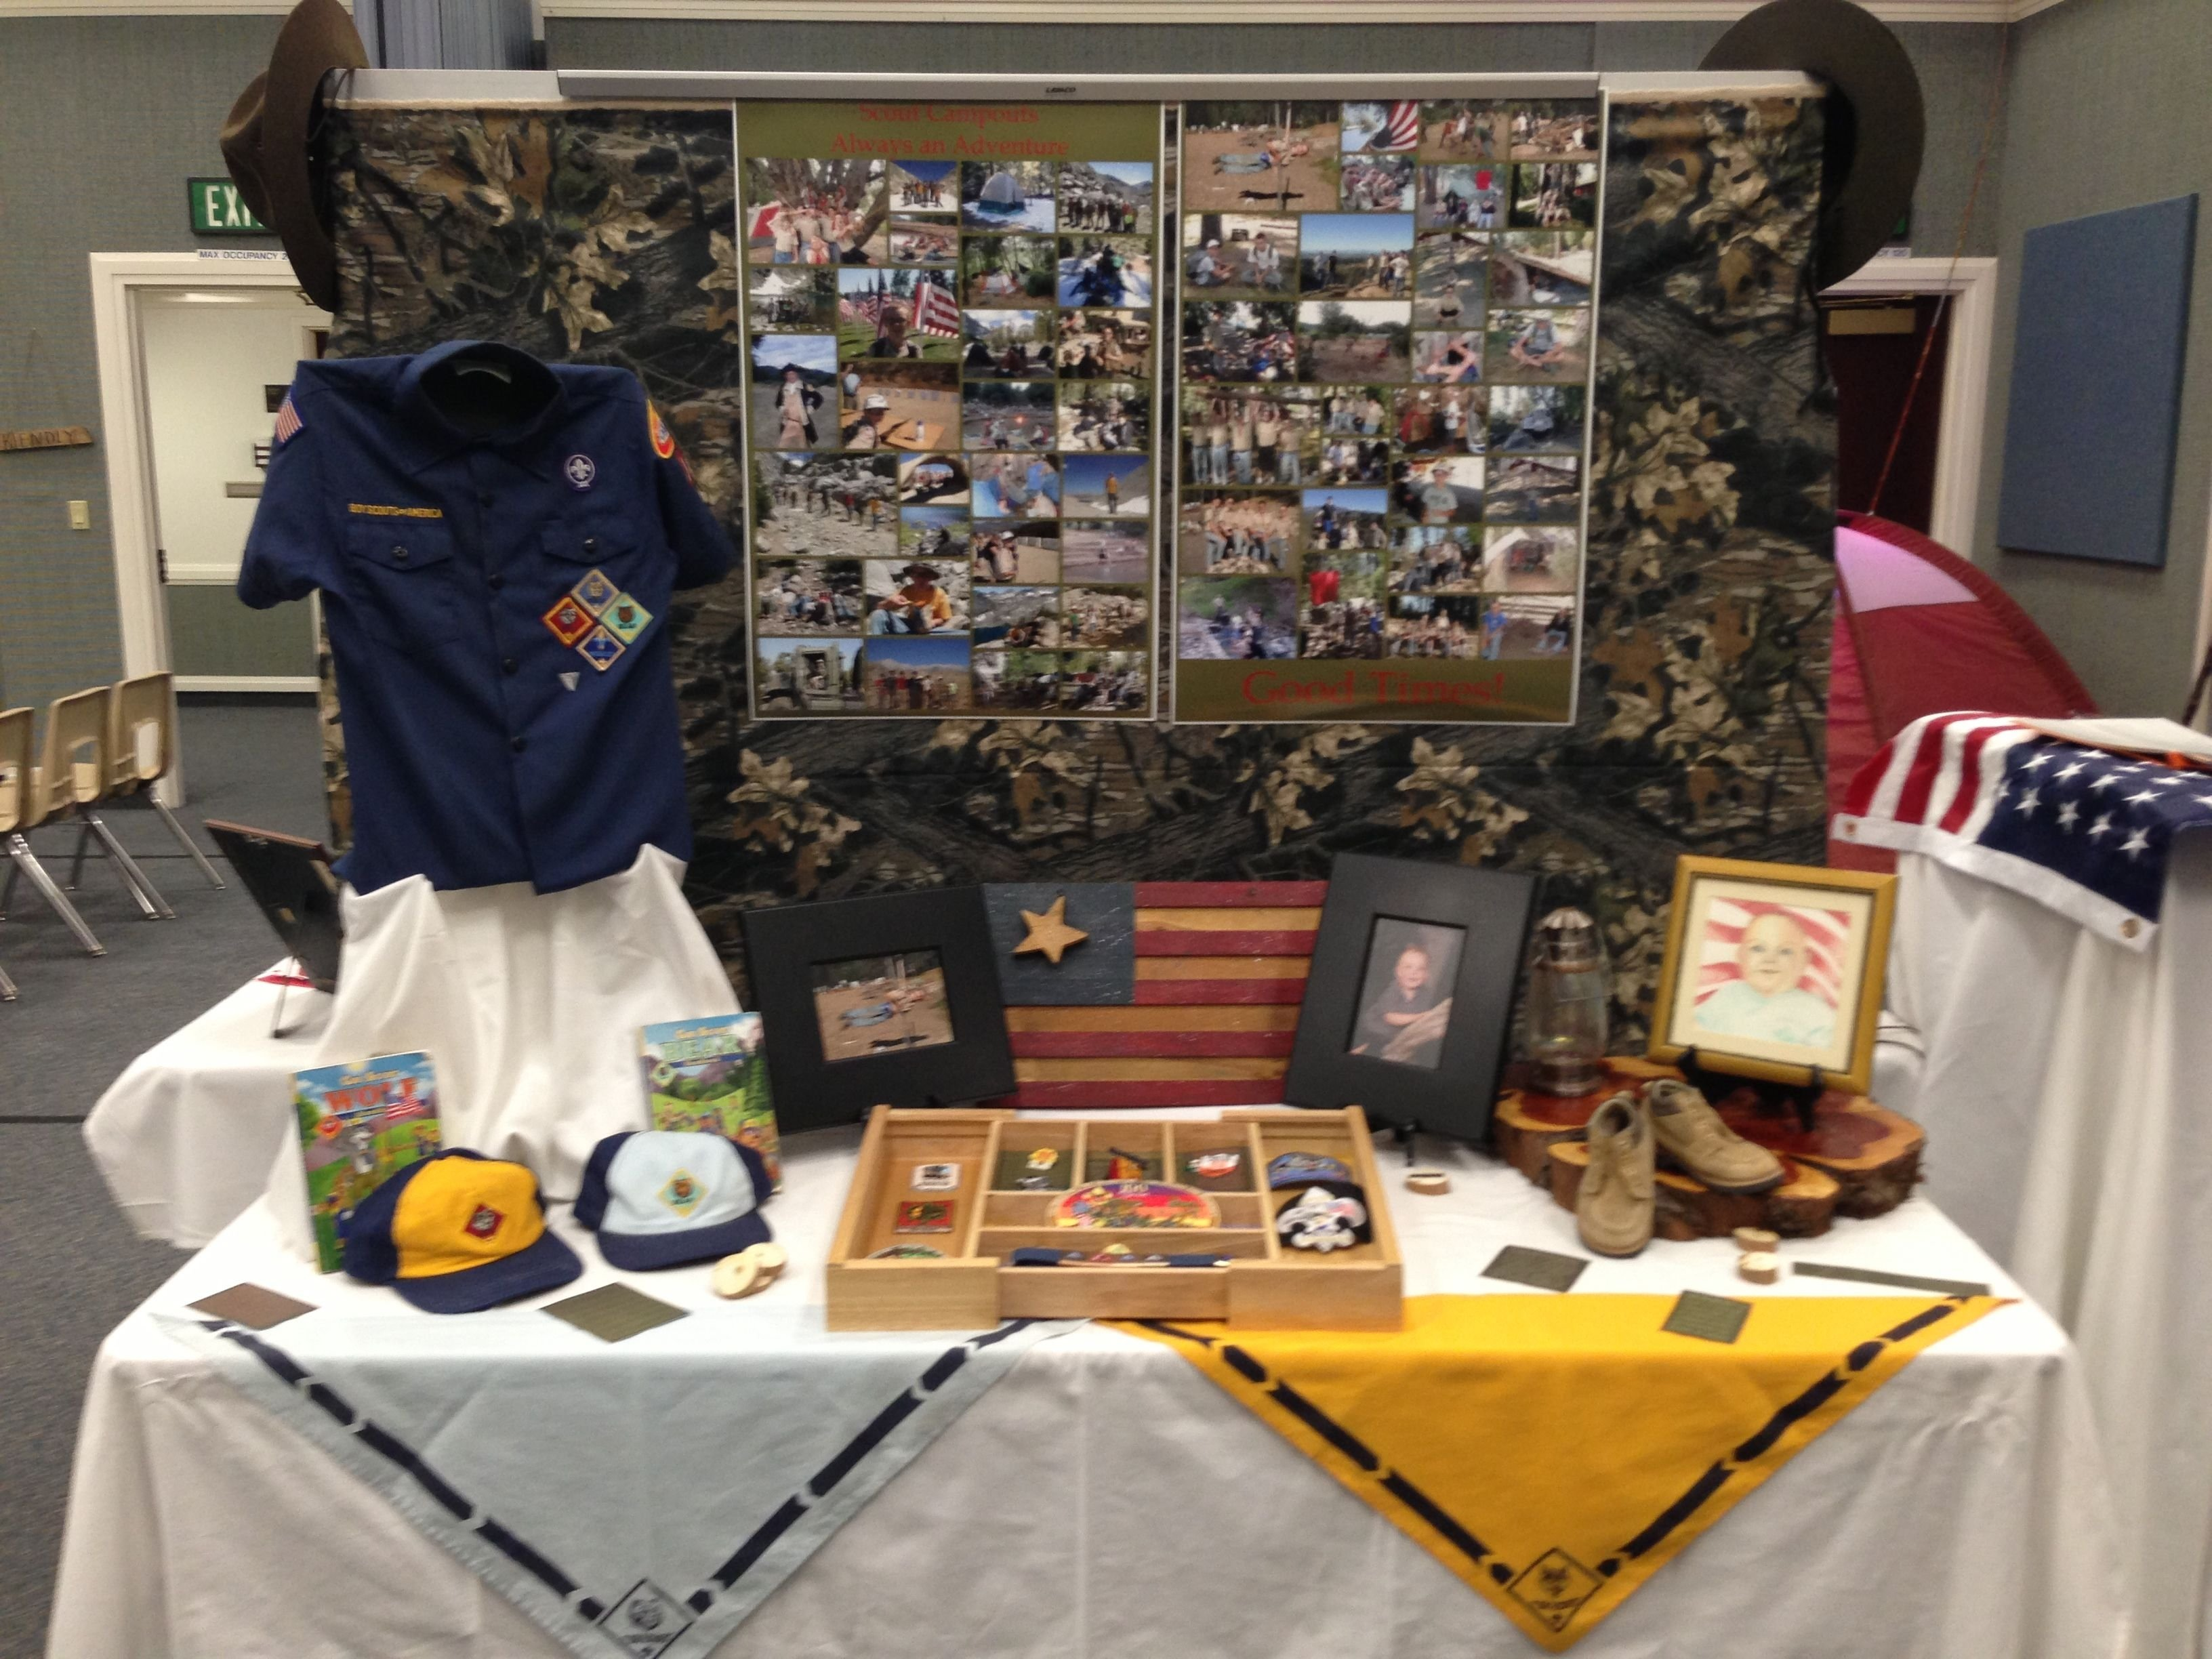 10 Spectacular Boy Scout Court Of Honor Ideas eagle scout court of honor decoration ideas eagle scout